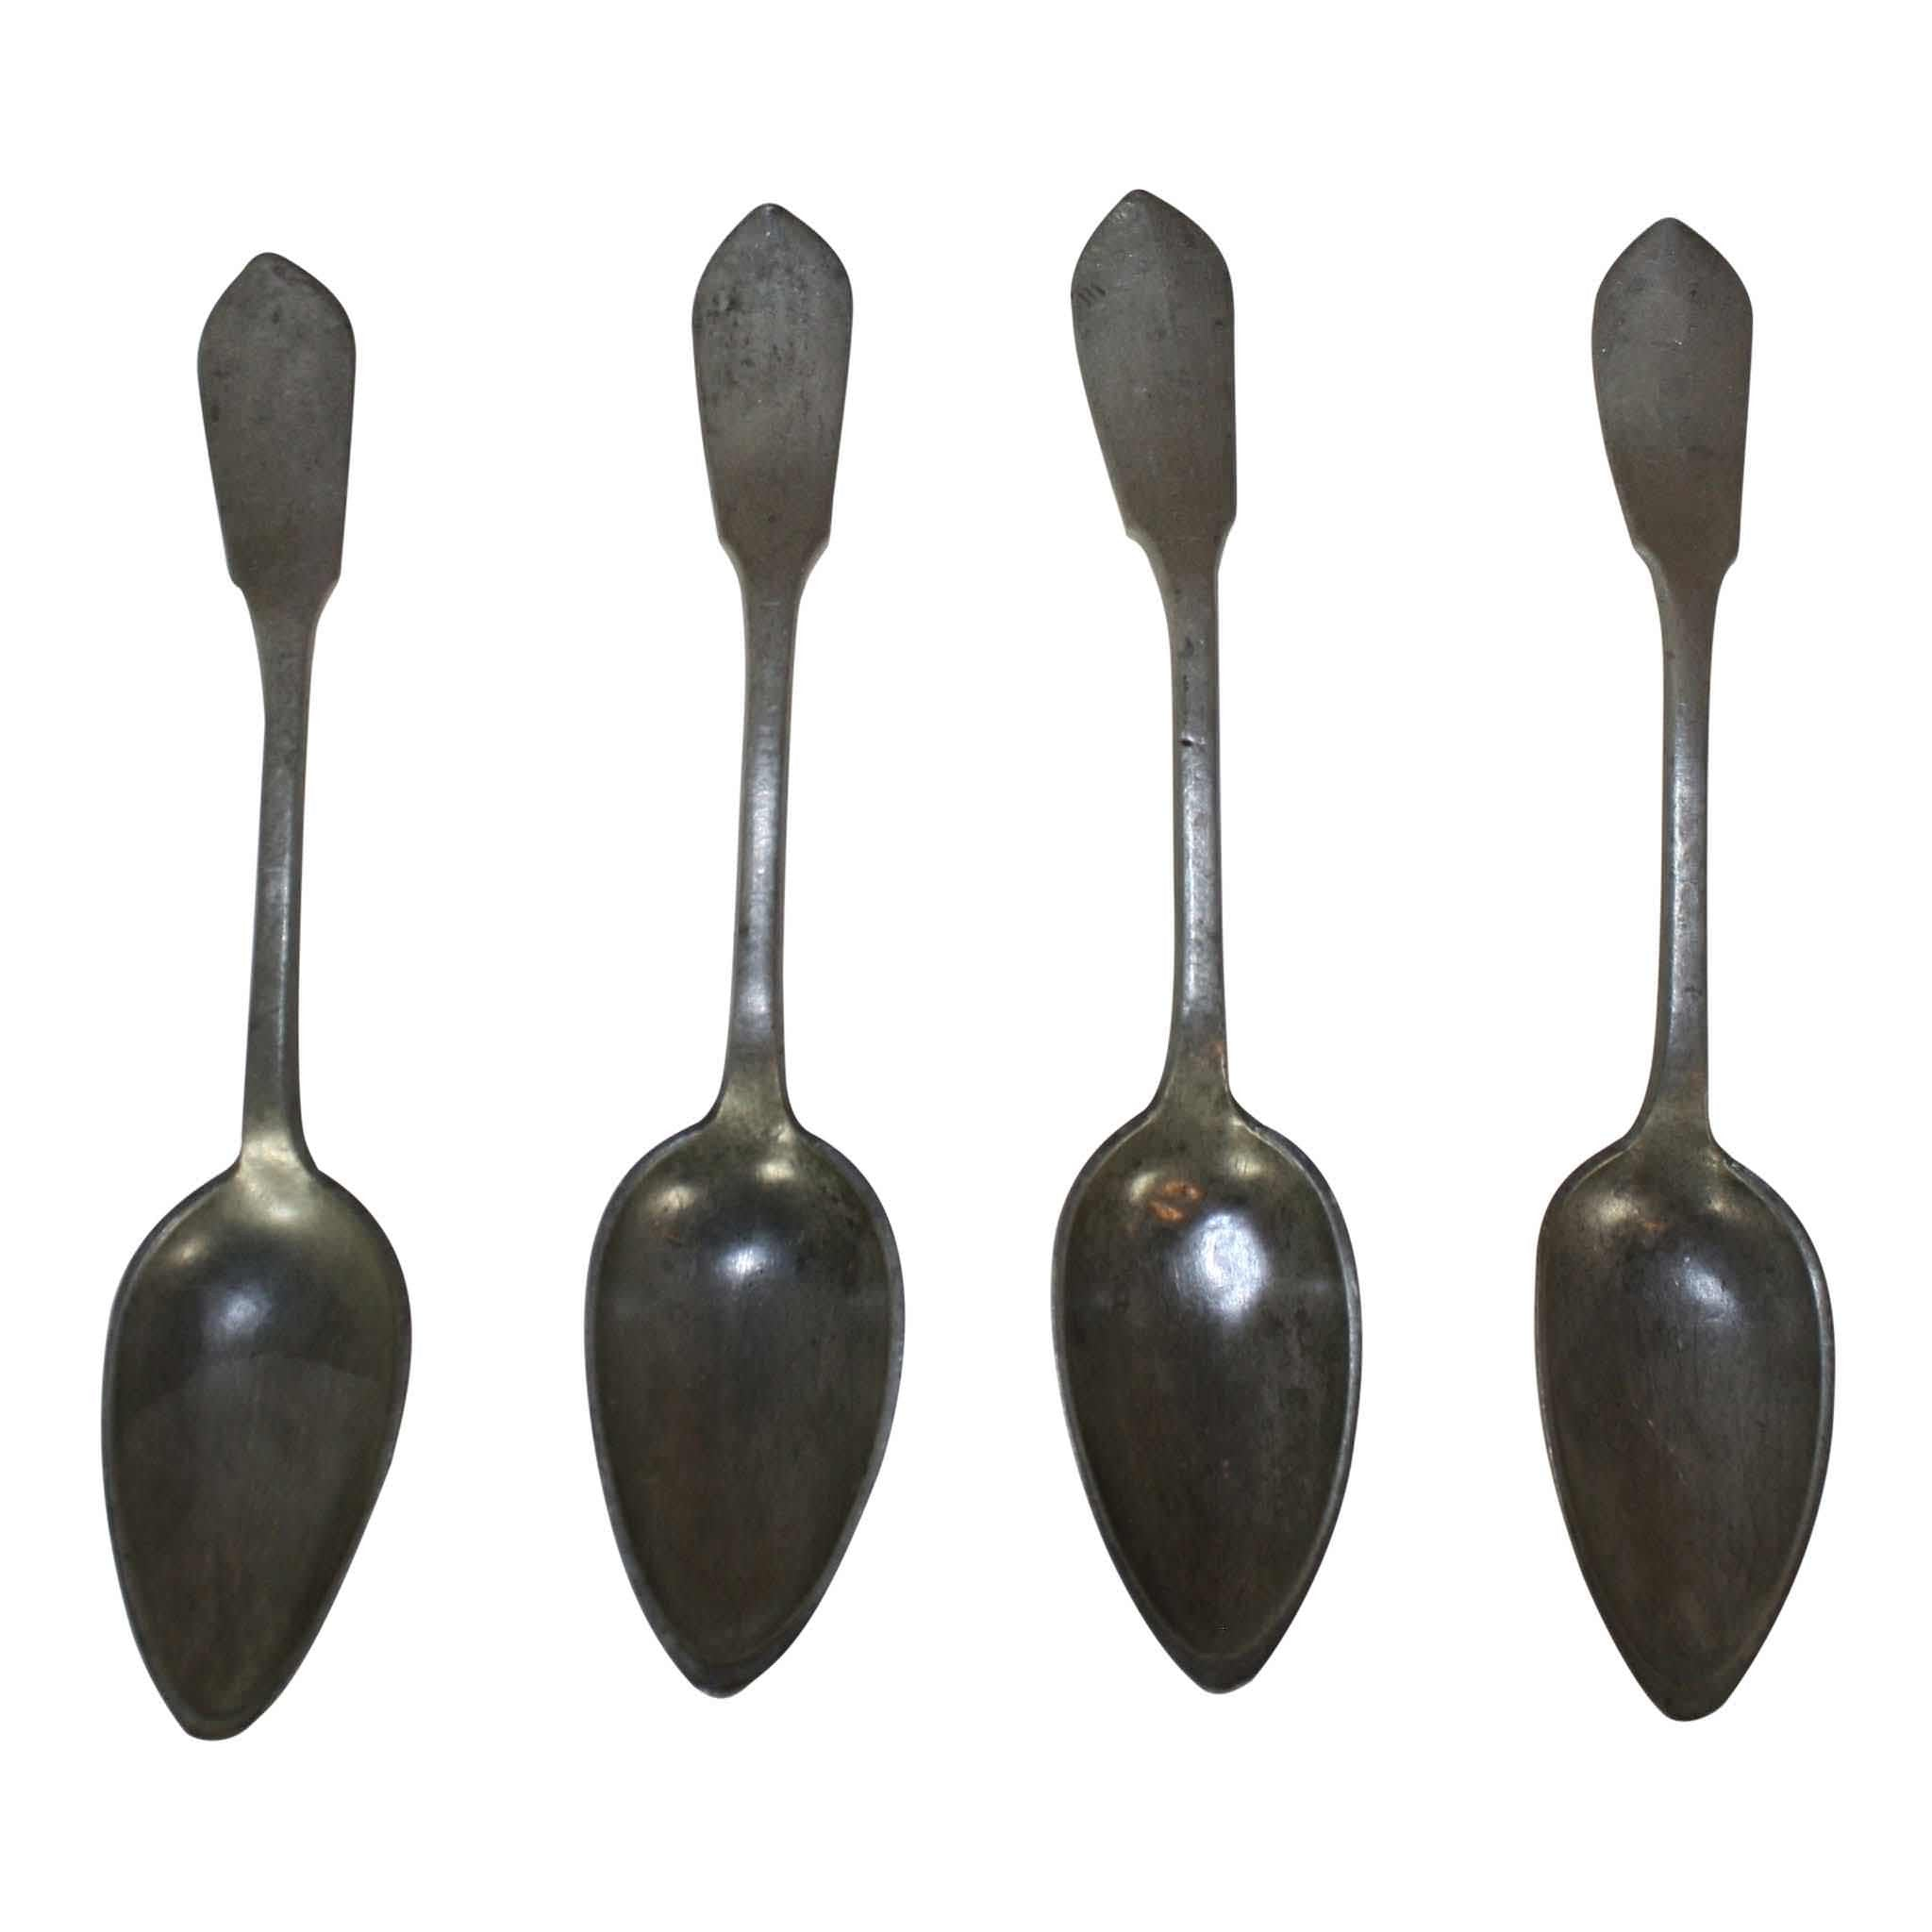 Four Pewter Spoons in Rack